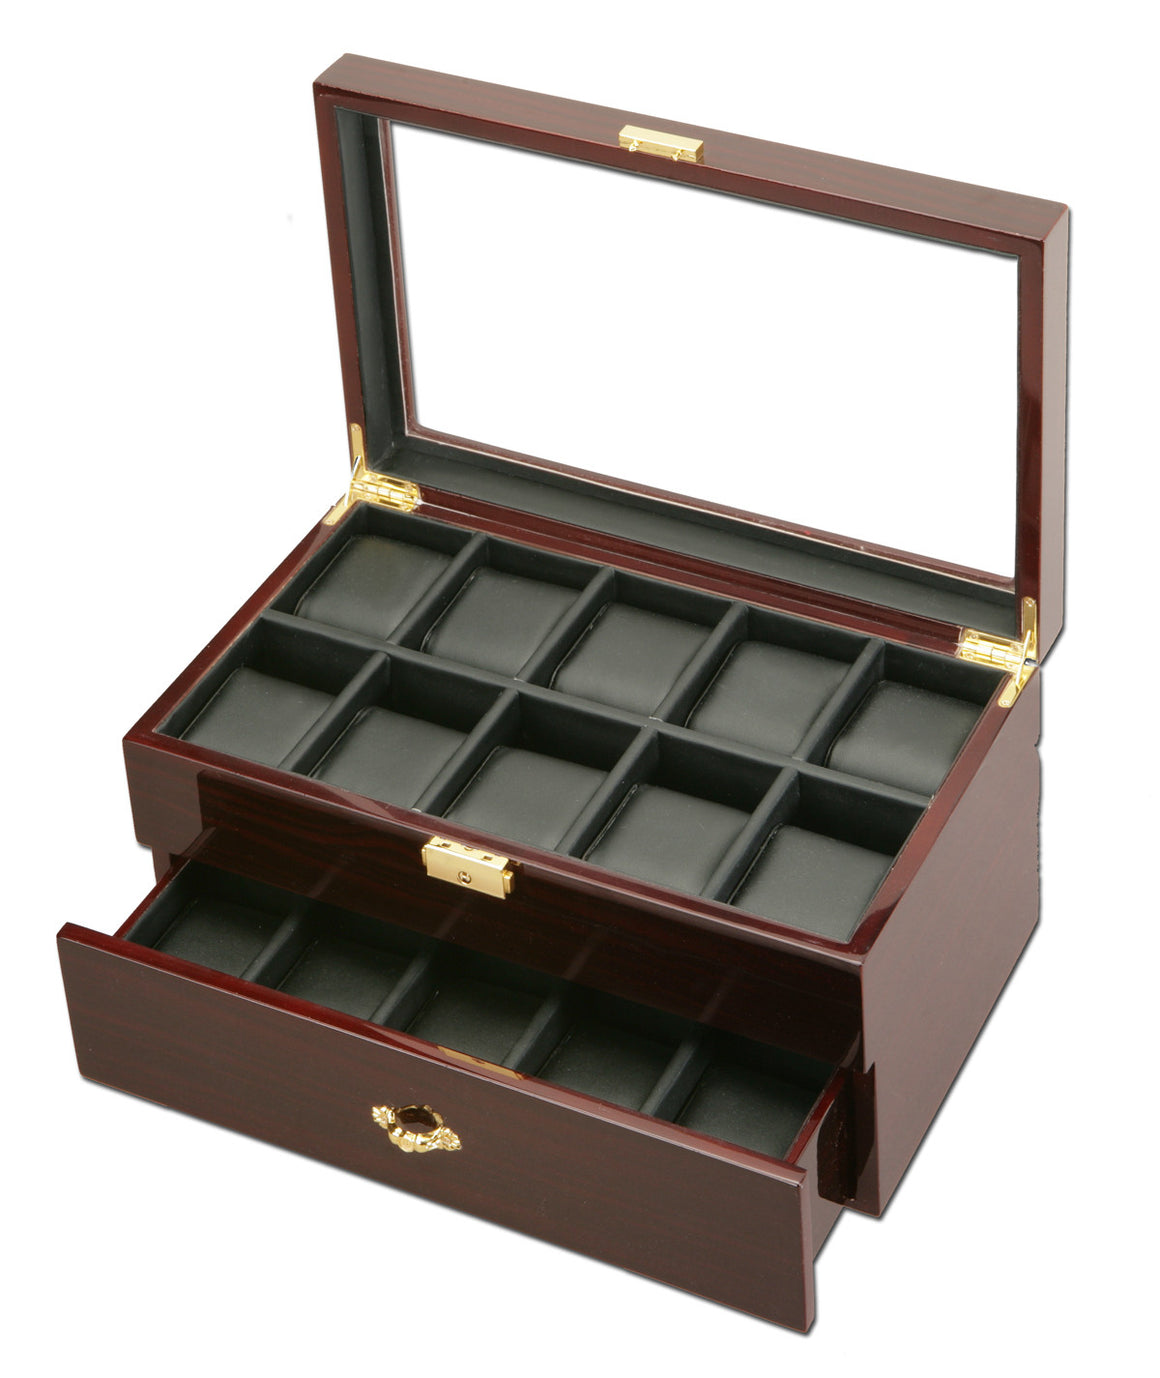 (20) Diplomat Dark Ebony wood Watch Box - Watch Box Co. - 1